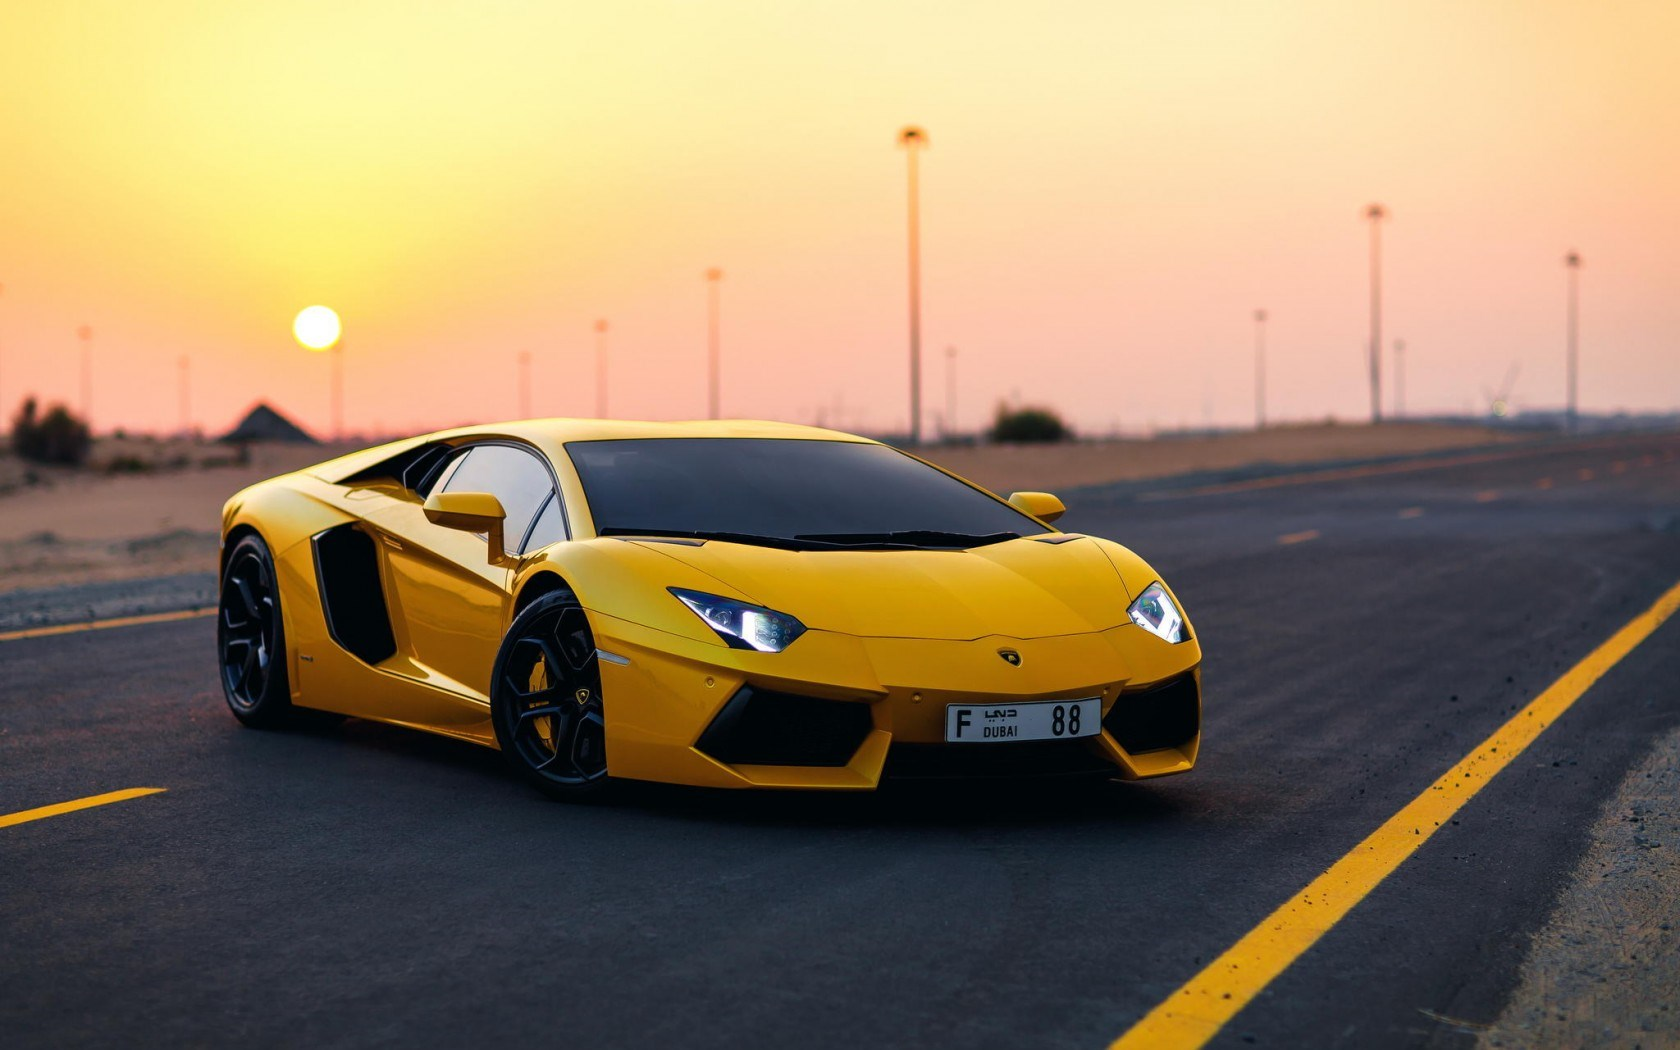 Lamborghini White Wallpapers HD  PixelsTalk Collection of Lamborghini Wallpapers on HDWallpapers 1680x1050